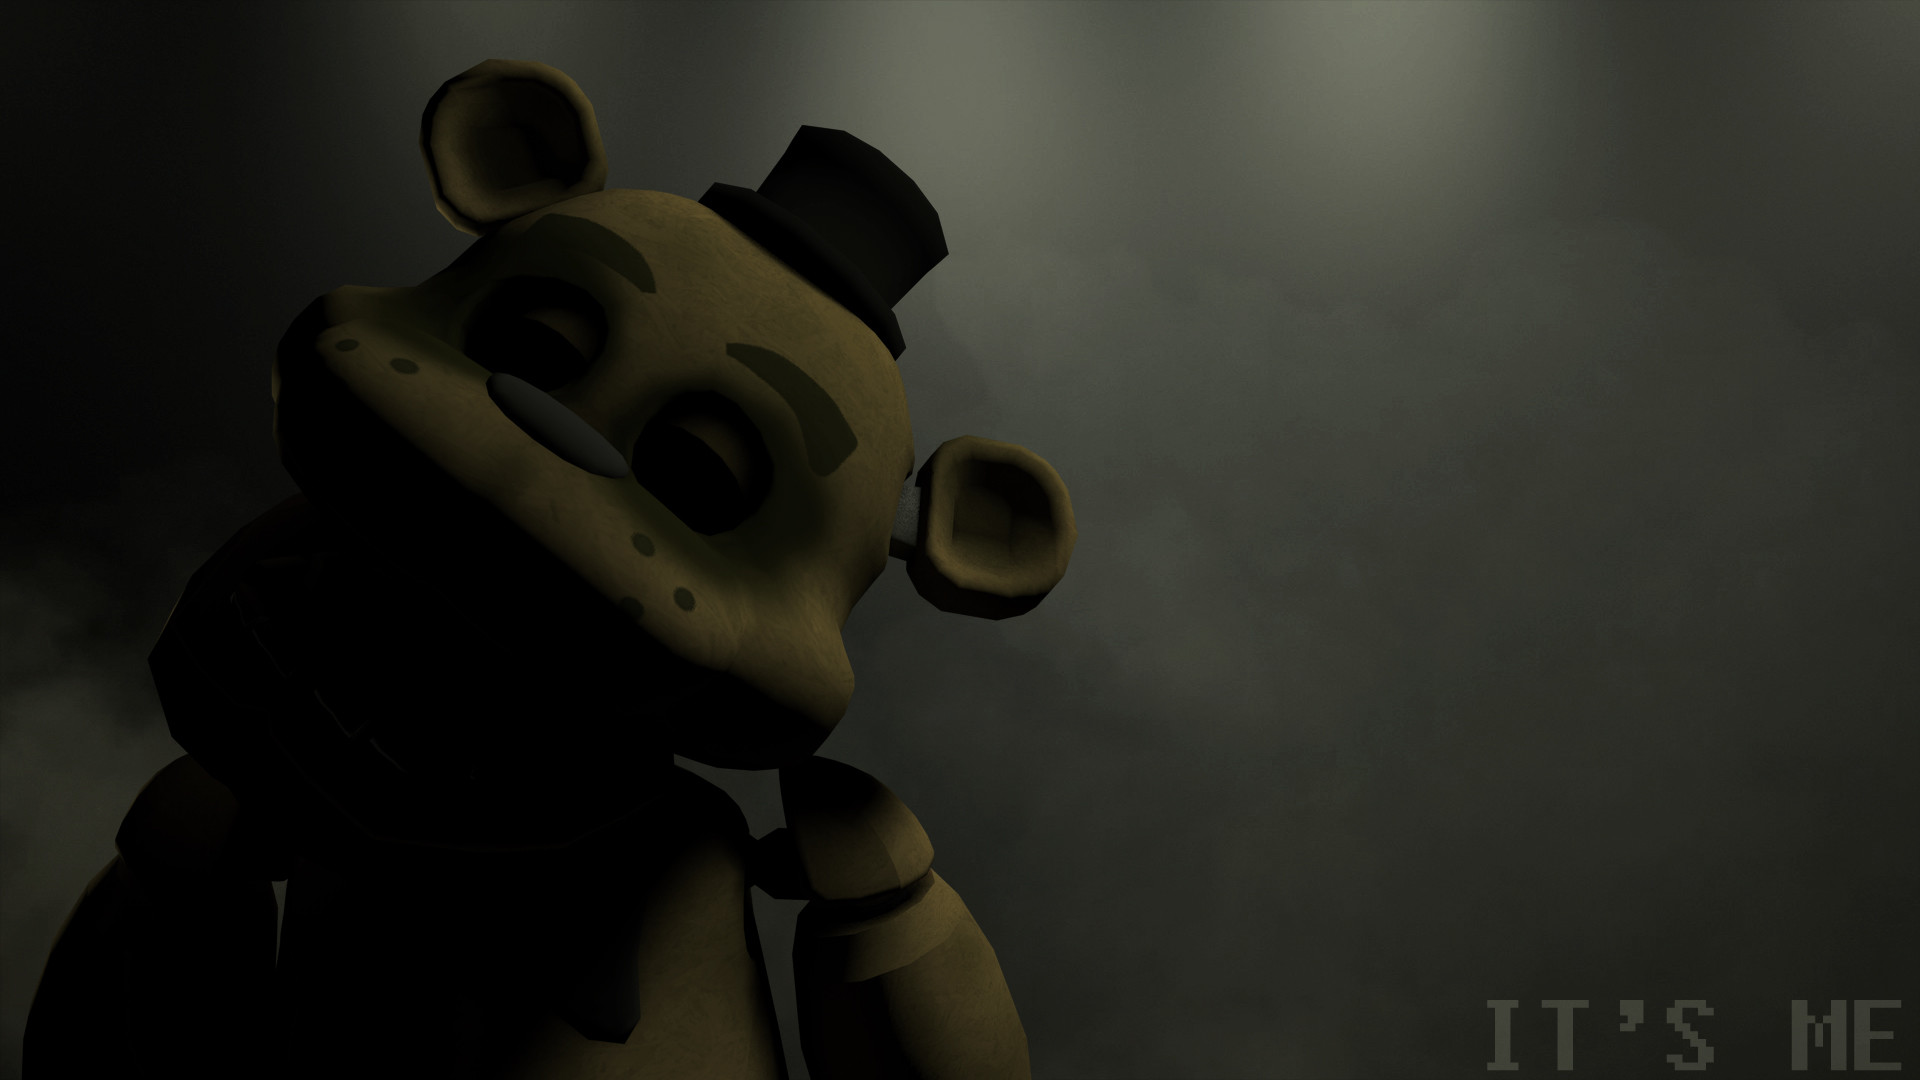 1920x1080 Golden Freddy Wallpaper by NiksonYT Golden Freddy Wallpaper by NiksonYT